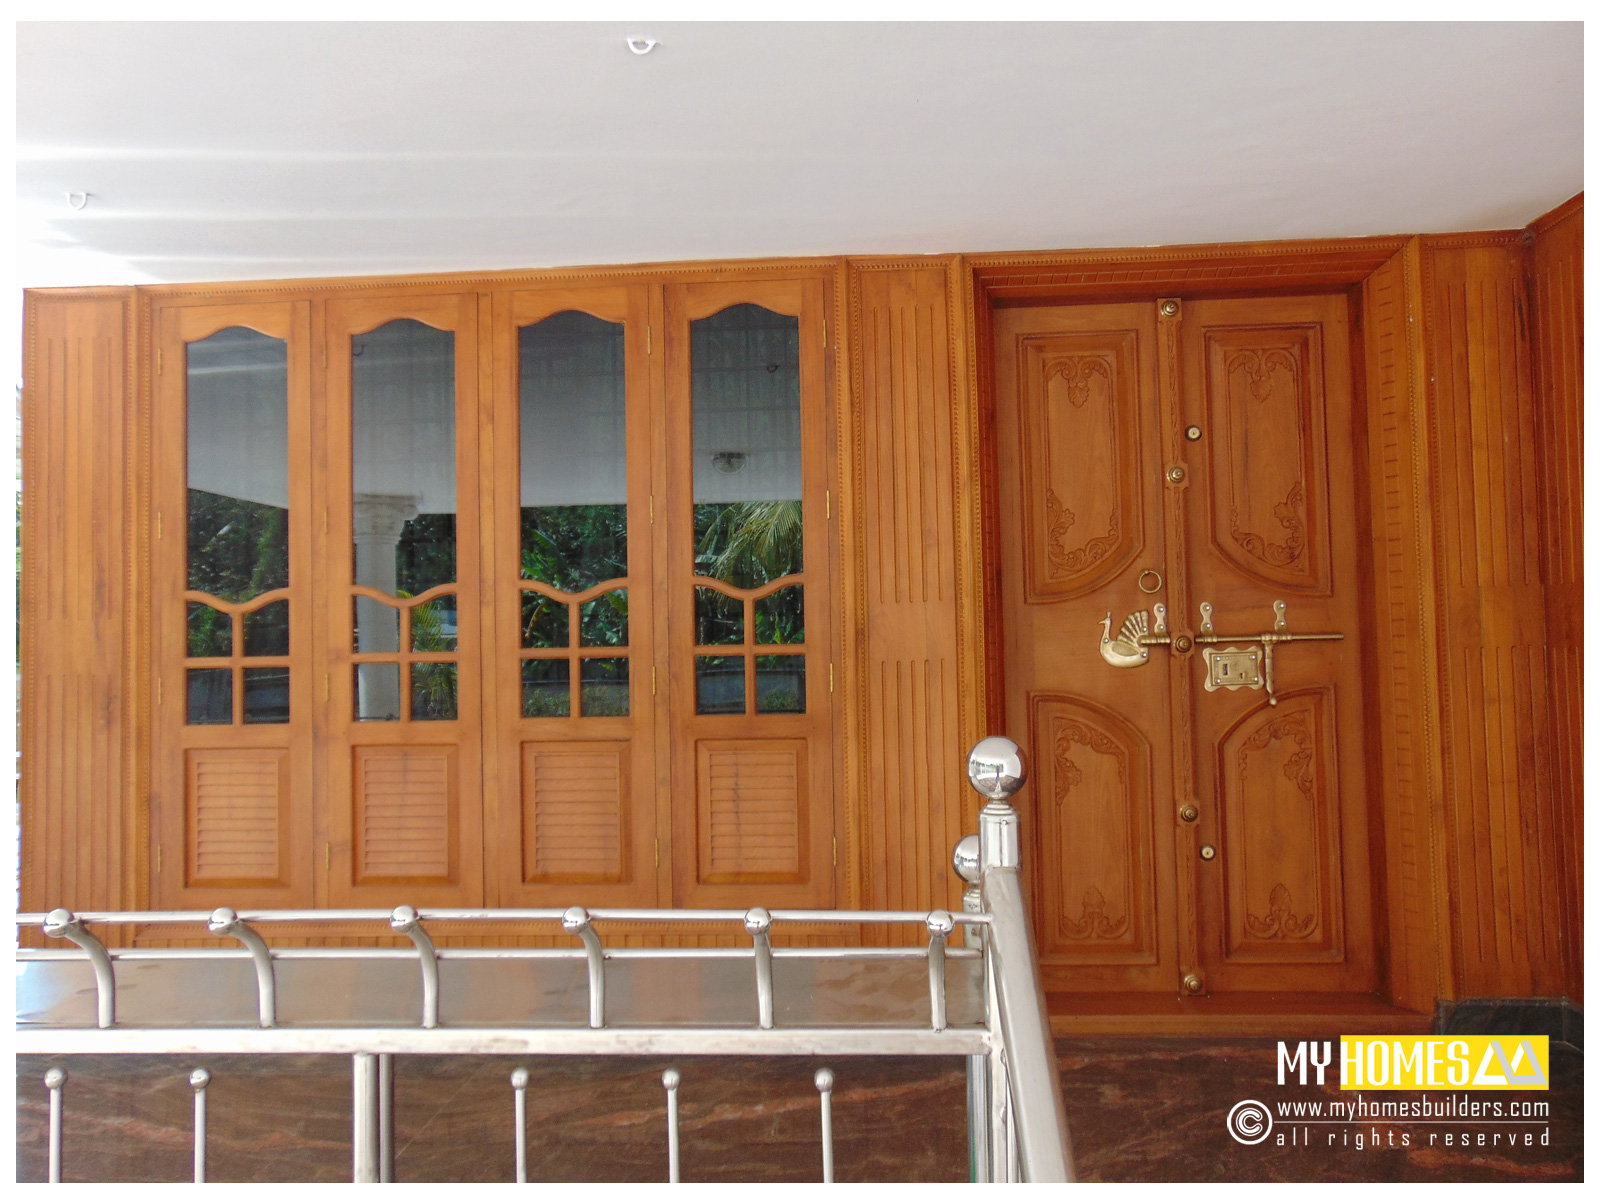 Window Doors Design A Dentil Shelf Which Is A Piece Of Molding With Blocks  Of Decorative